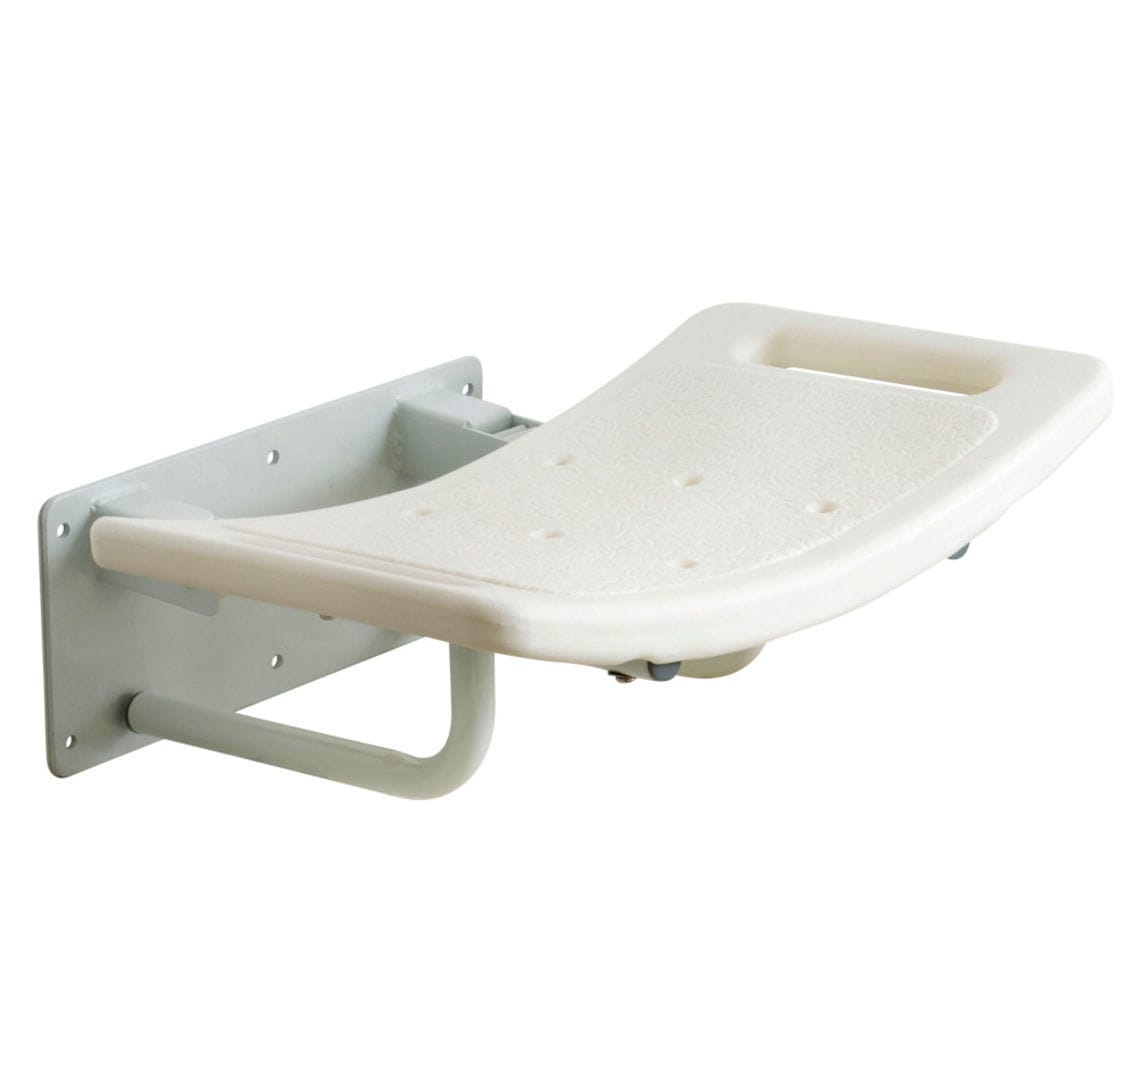 Shower seat / fold-down / wall-mounted - SWALL001, SWALL002 - Drive ...